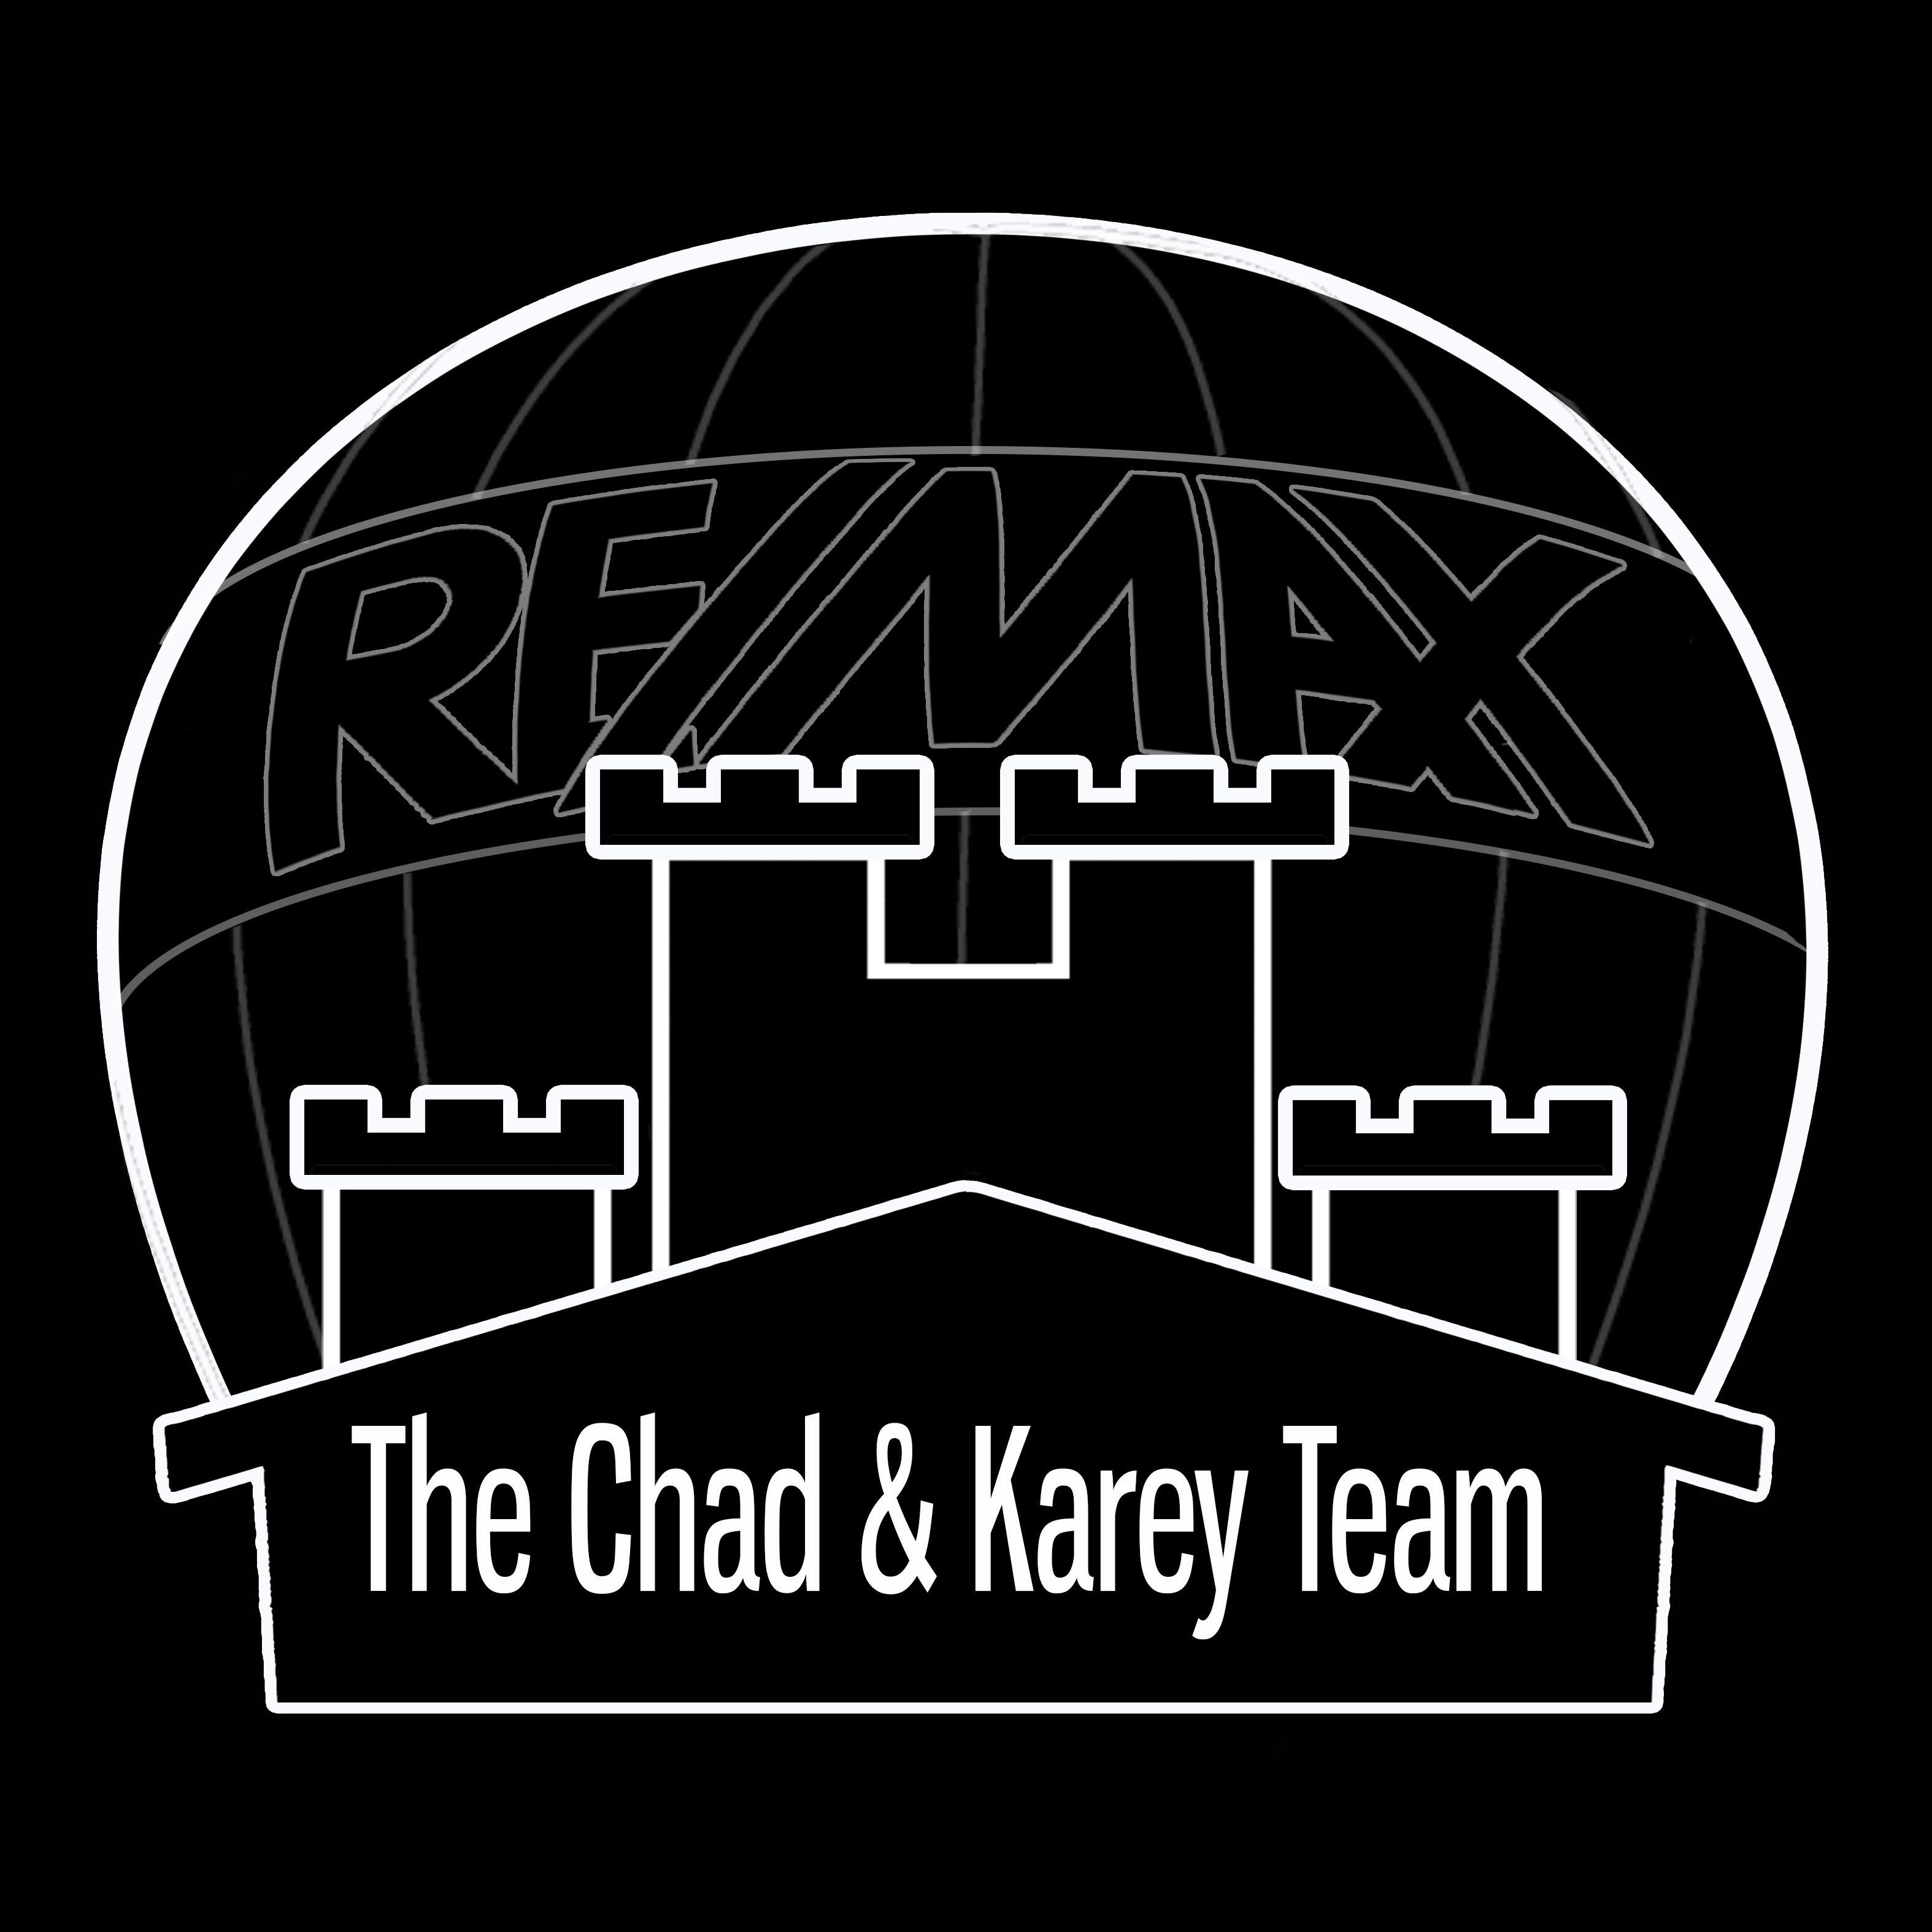 The Chad and Karey Team - RE/MAX image 5